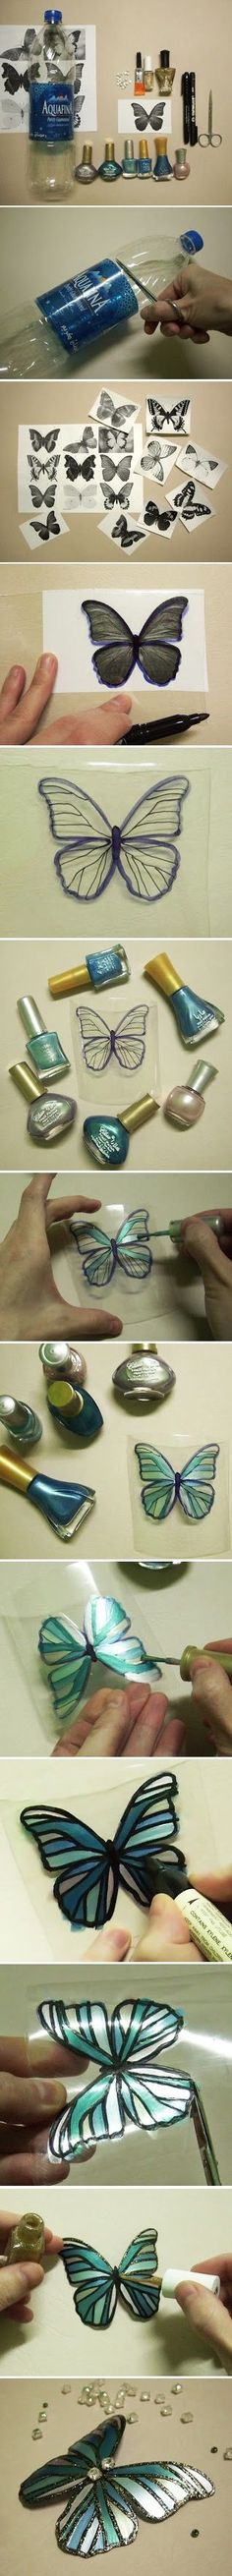 DIY Butterflies diy crafts craft ideas easy crafts diy ideas diy idea diy home diy vase easy diy for the home crafty decor home ideas diy decorations - Amazing Diy Gifts Cute Crafts, Crafts To Do, Crafts For Kids, Arts And Crafts, Teen Crafts, Easy Diy Crafts, Diy Butterfly, Butterfly Decorations, Craft Decorations